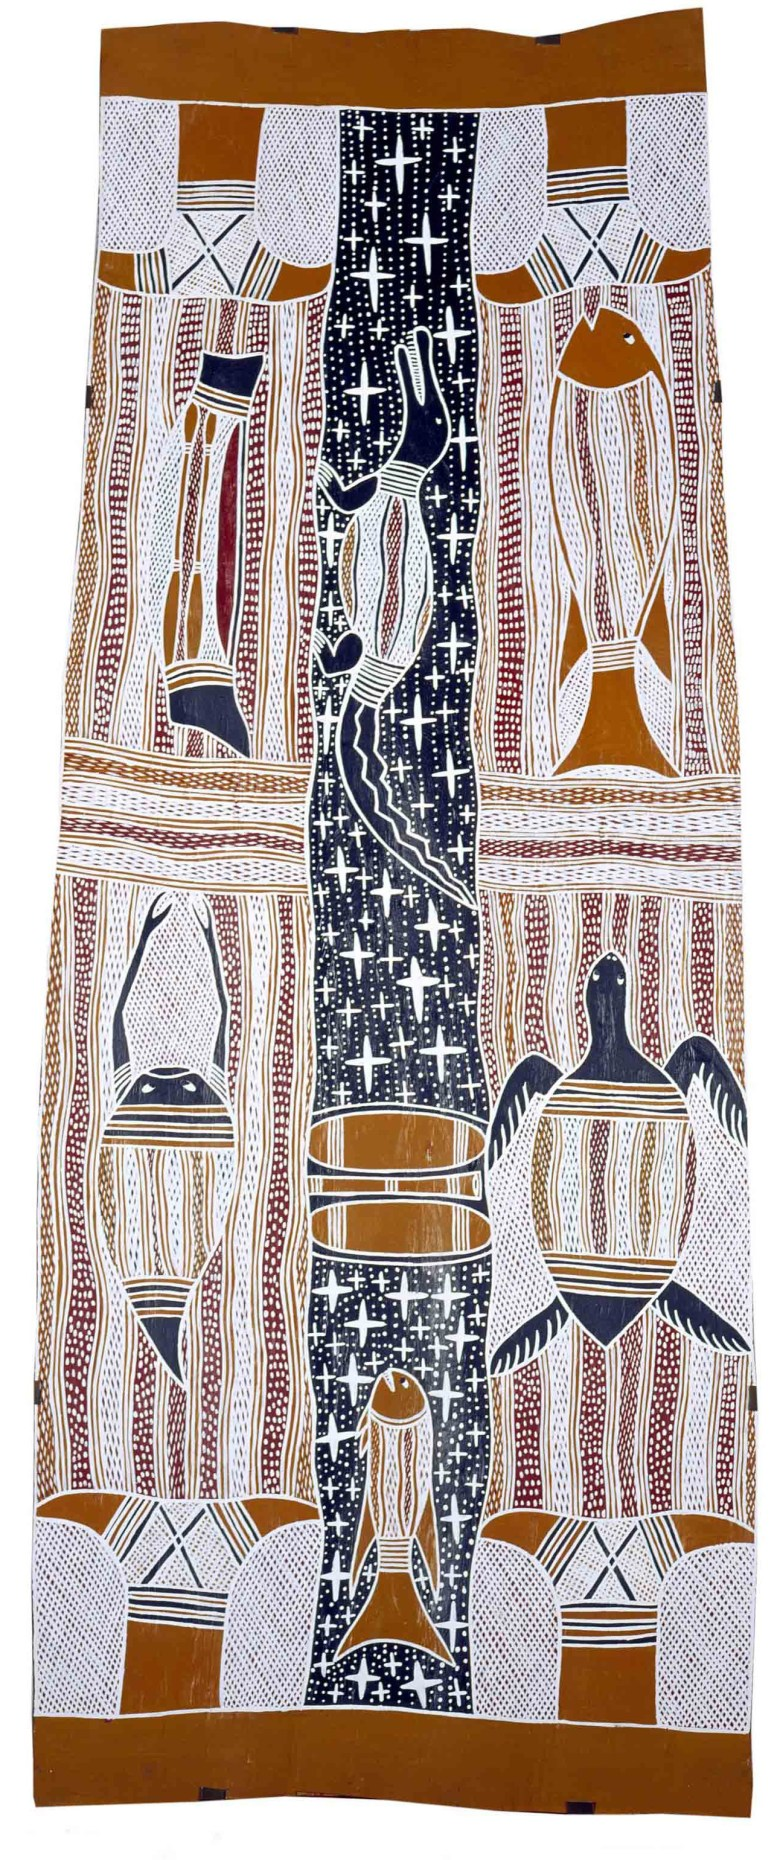 Milŋiyawuy, Naminapu Maymuru, ANMM Collection (Purchased with the assistance of Stephen Grant of the GrantPirrie Gallery, reproduced courtesy of the artist and Buku-Larrŋgay Mulka Art Centre)